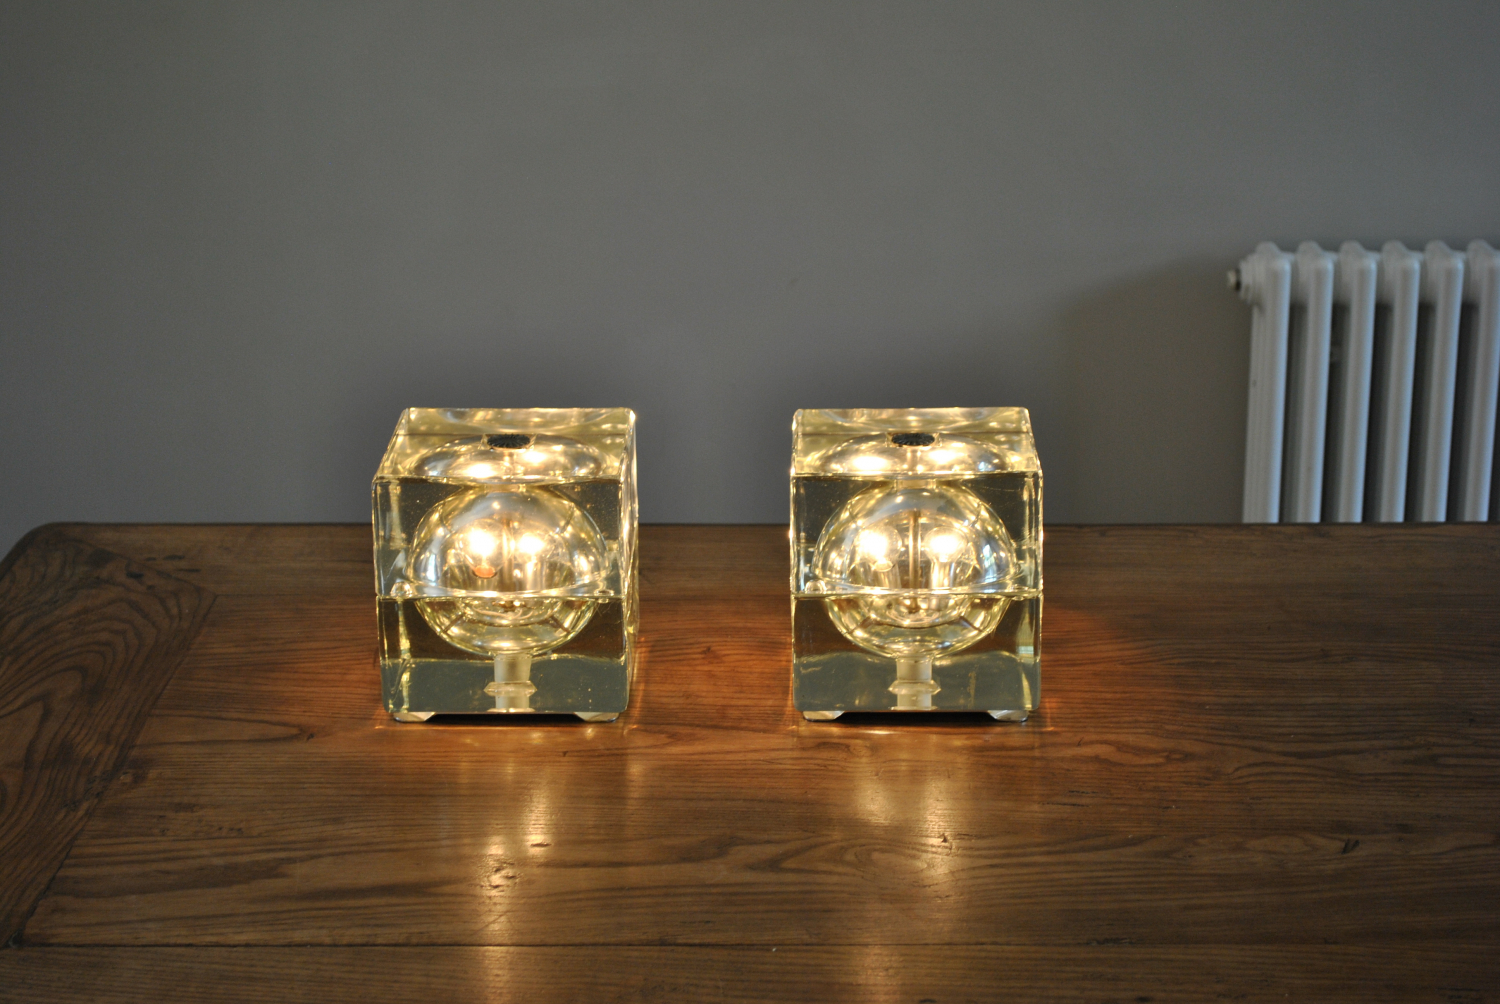 Pair of Mendini table lamps